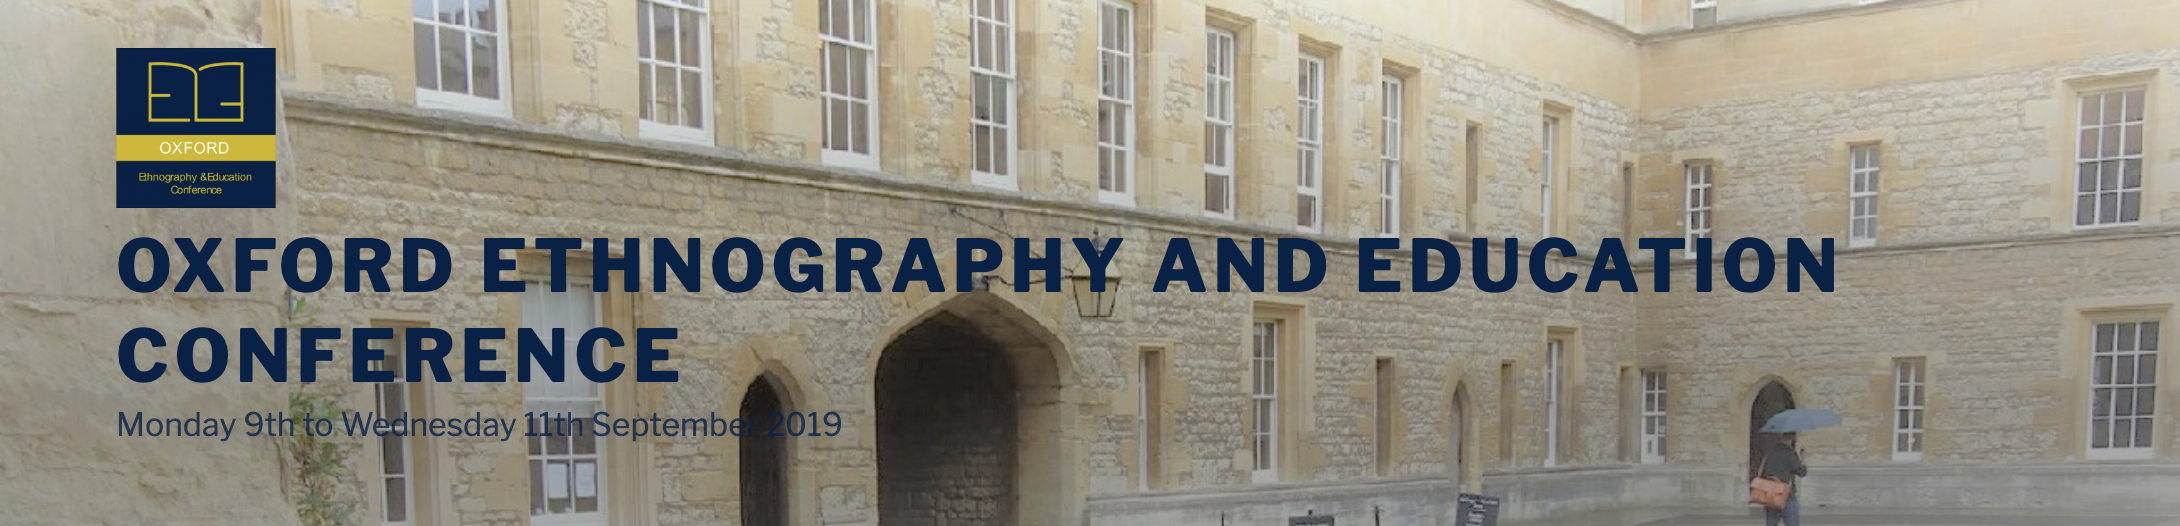 Comics and Ethnography at Oxford